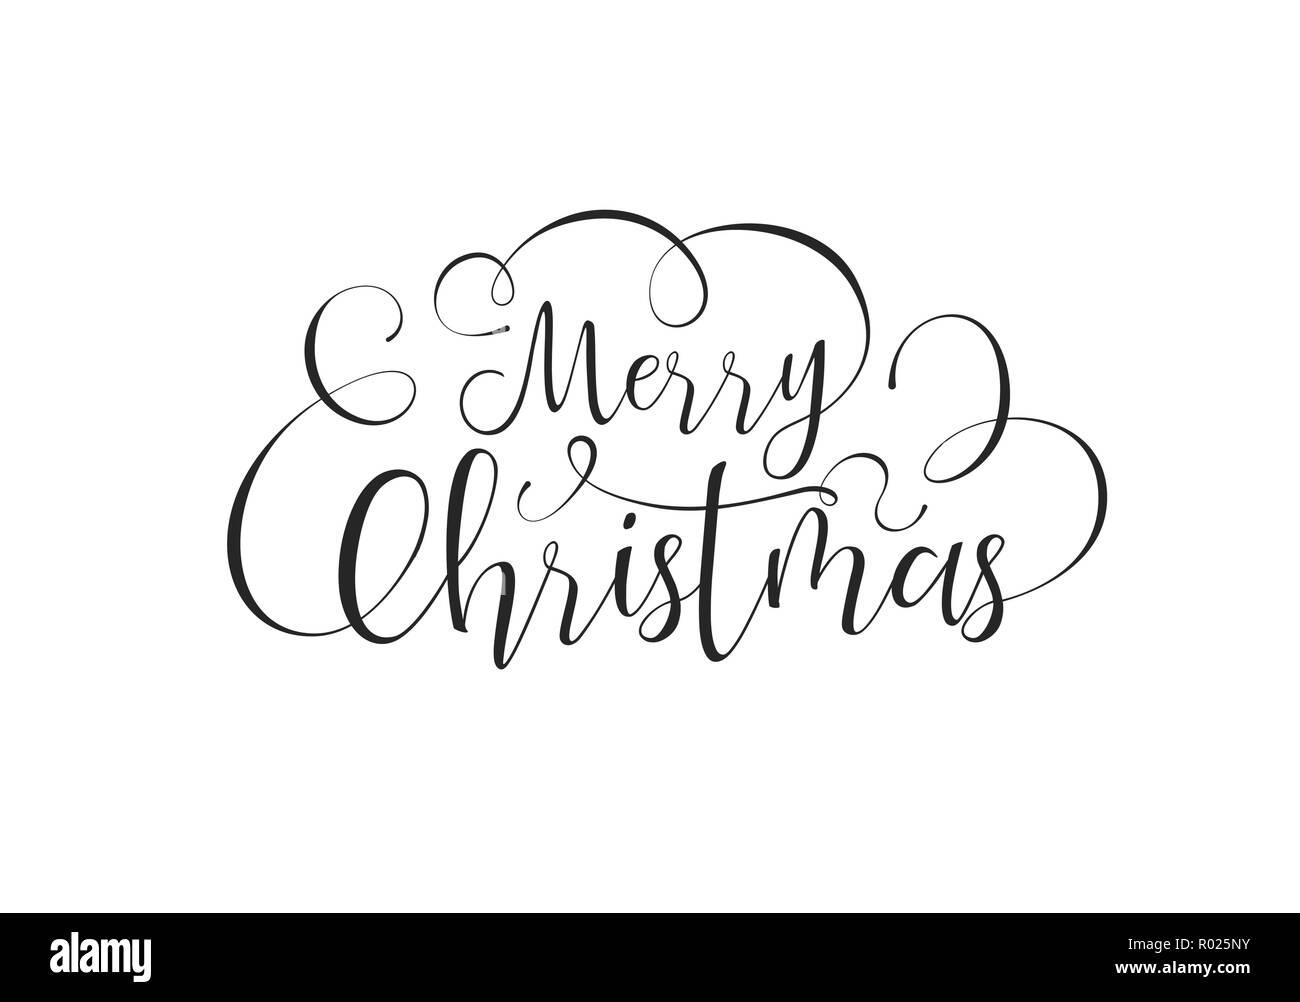 Merry Christmas In Cursive.Merry Christmas Cursive Message Vector Stock Photos Merry